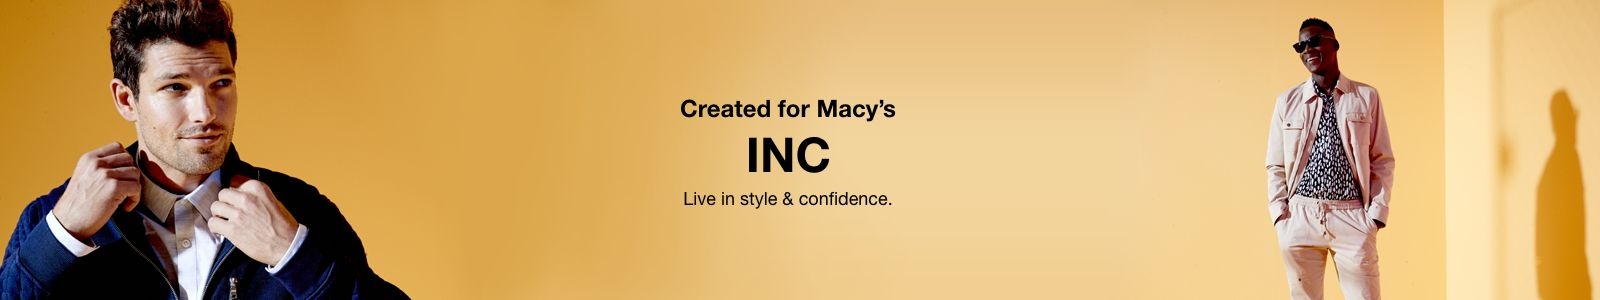 Created for Macy's